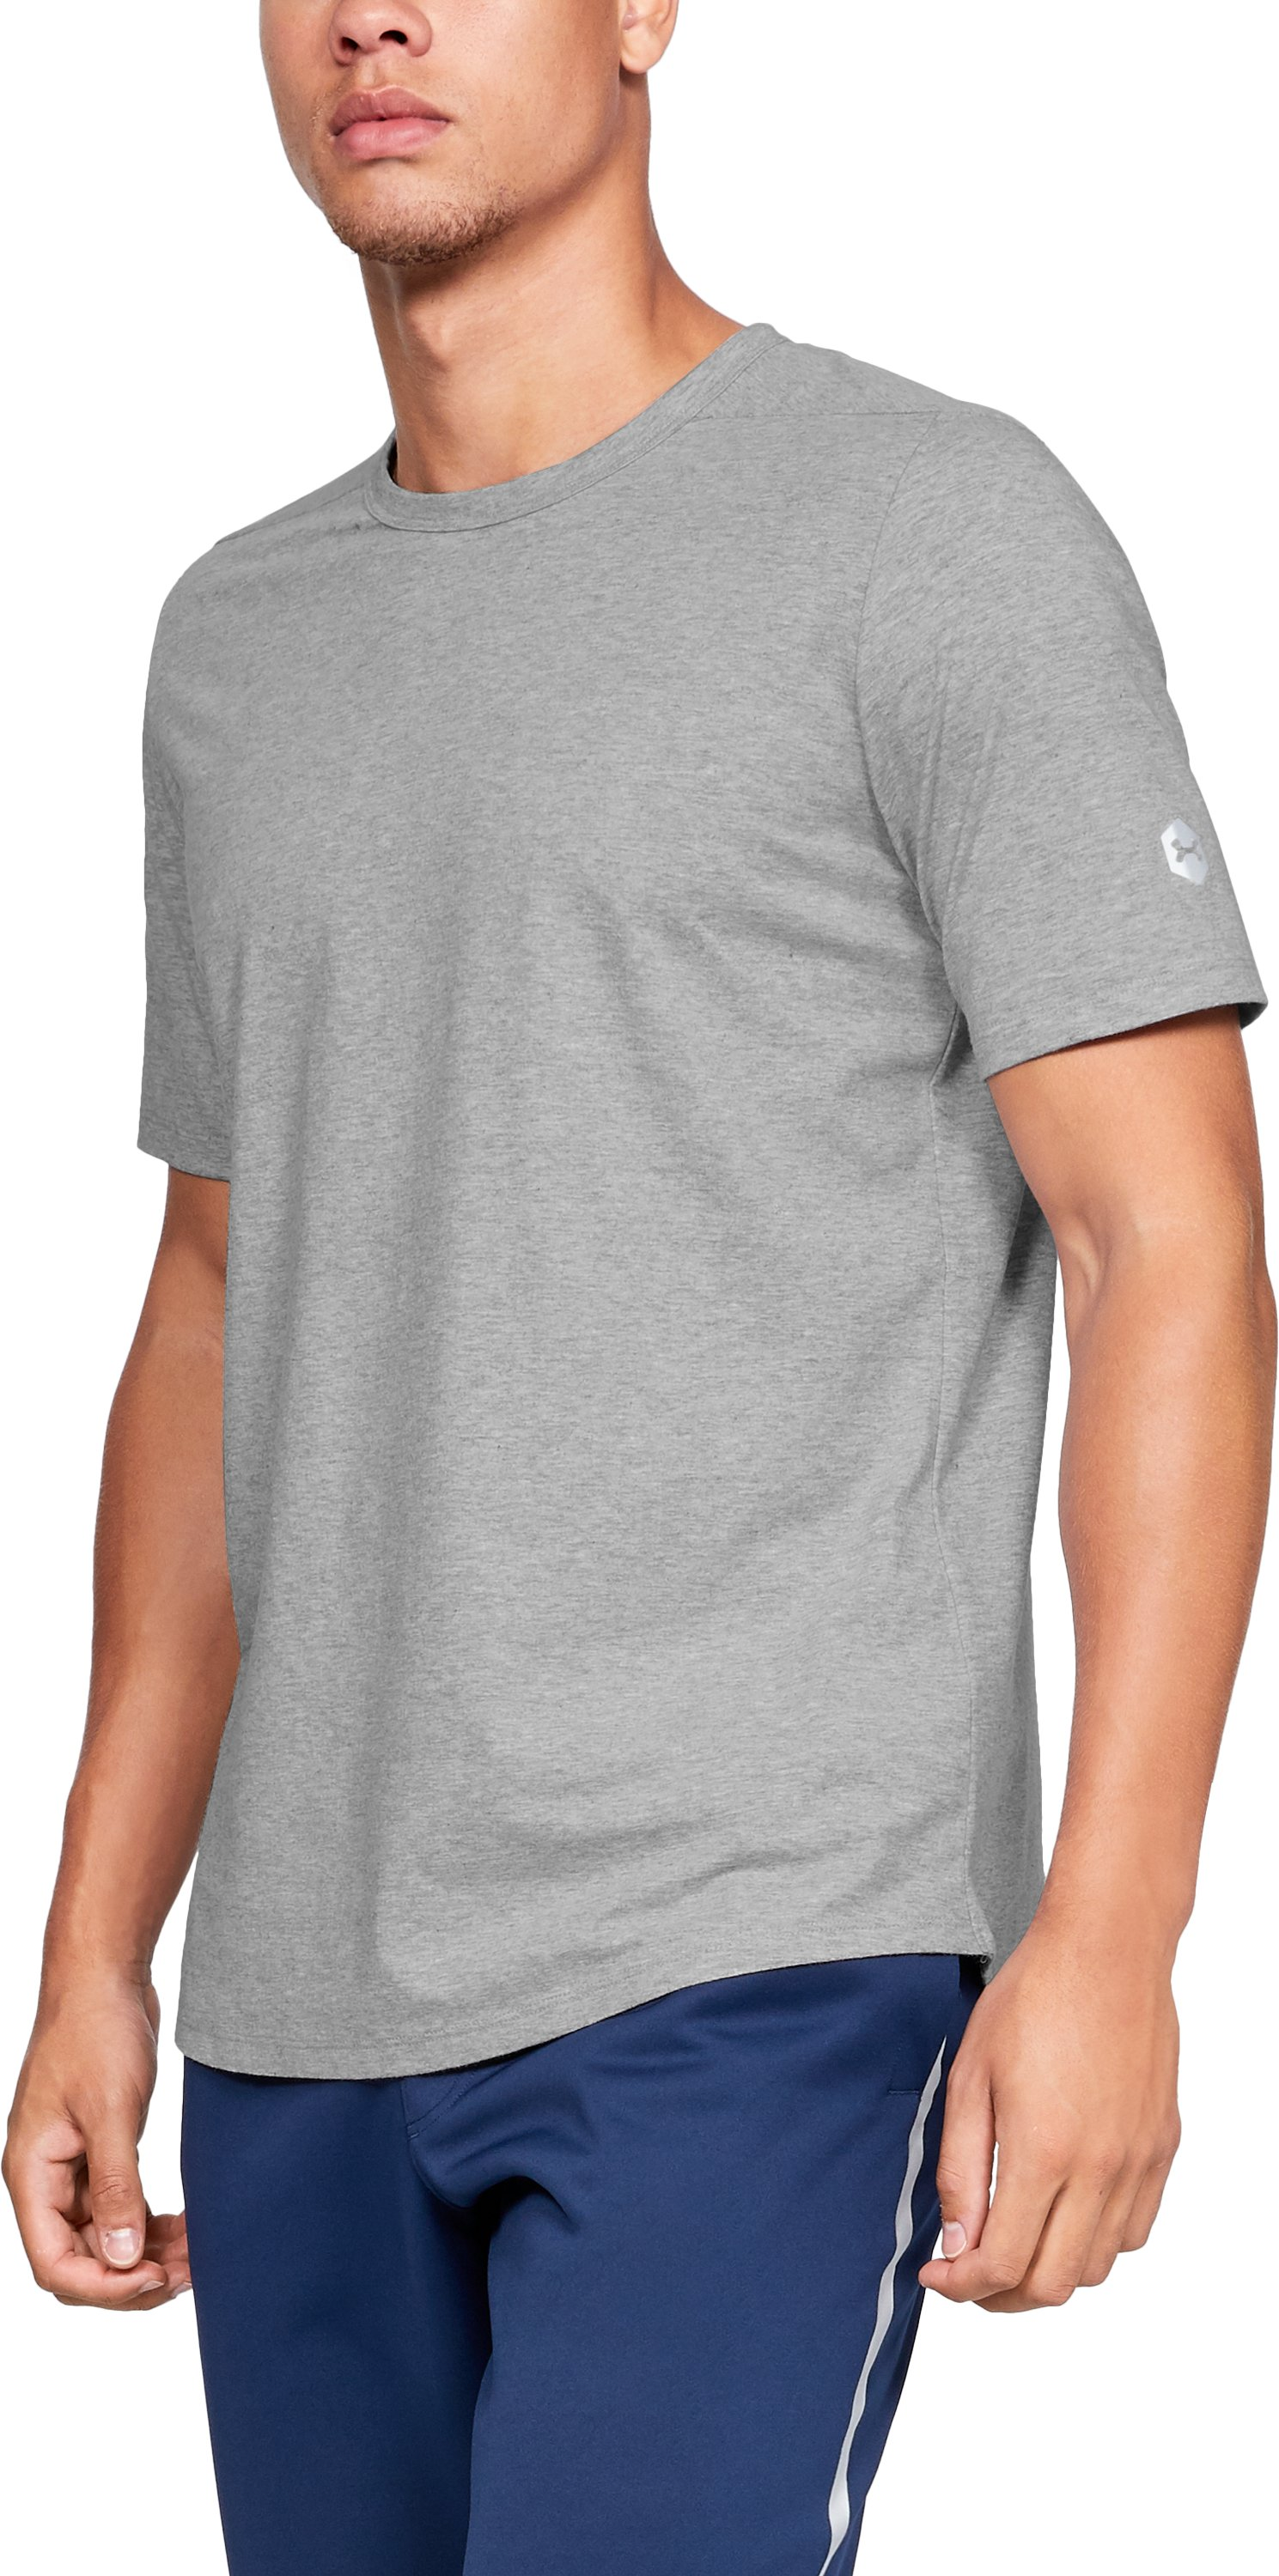 Men's Athlete Recovery T-Shirt, Performance Gray